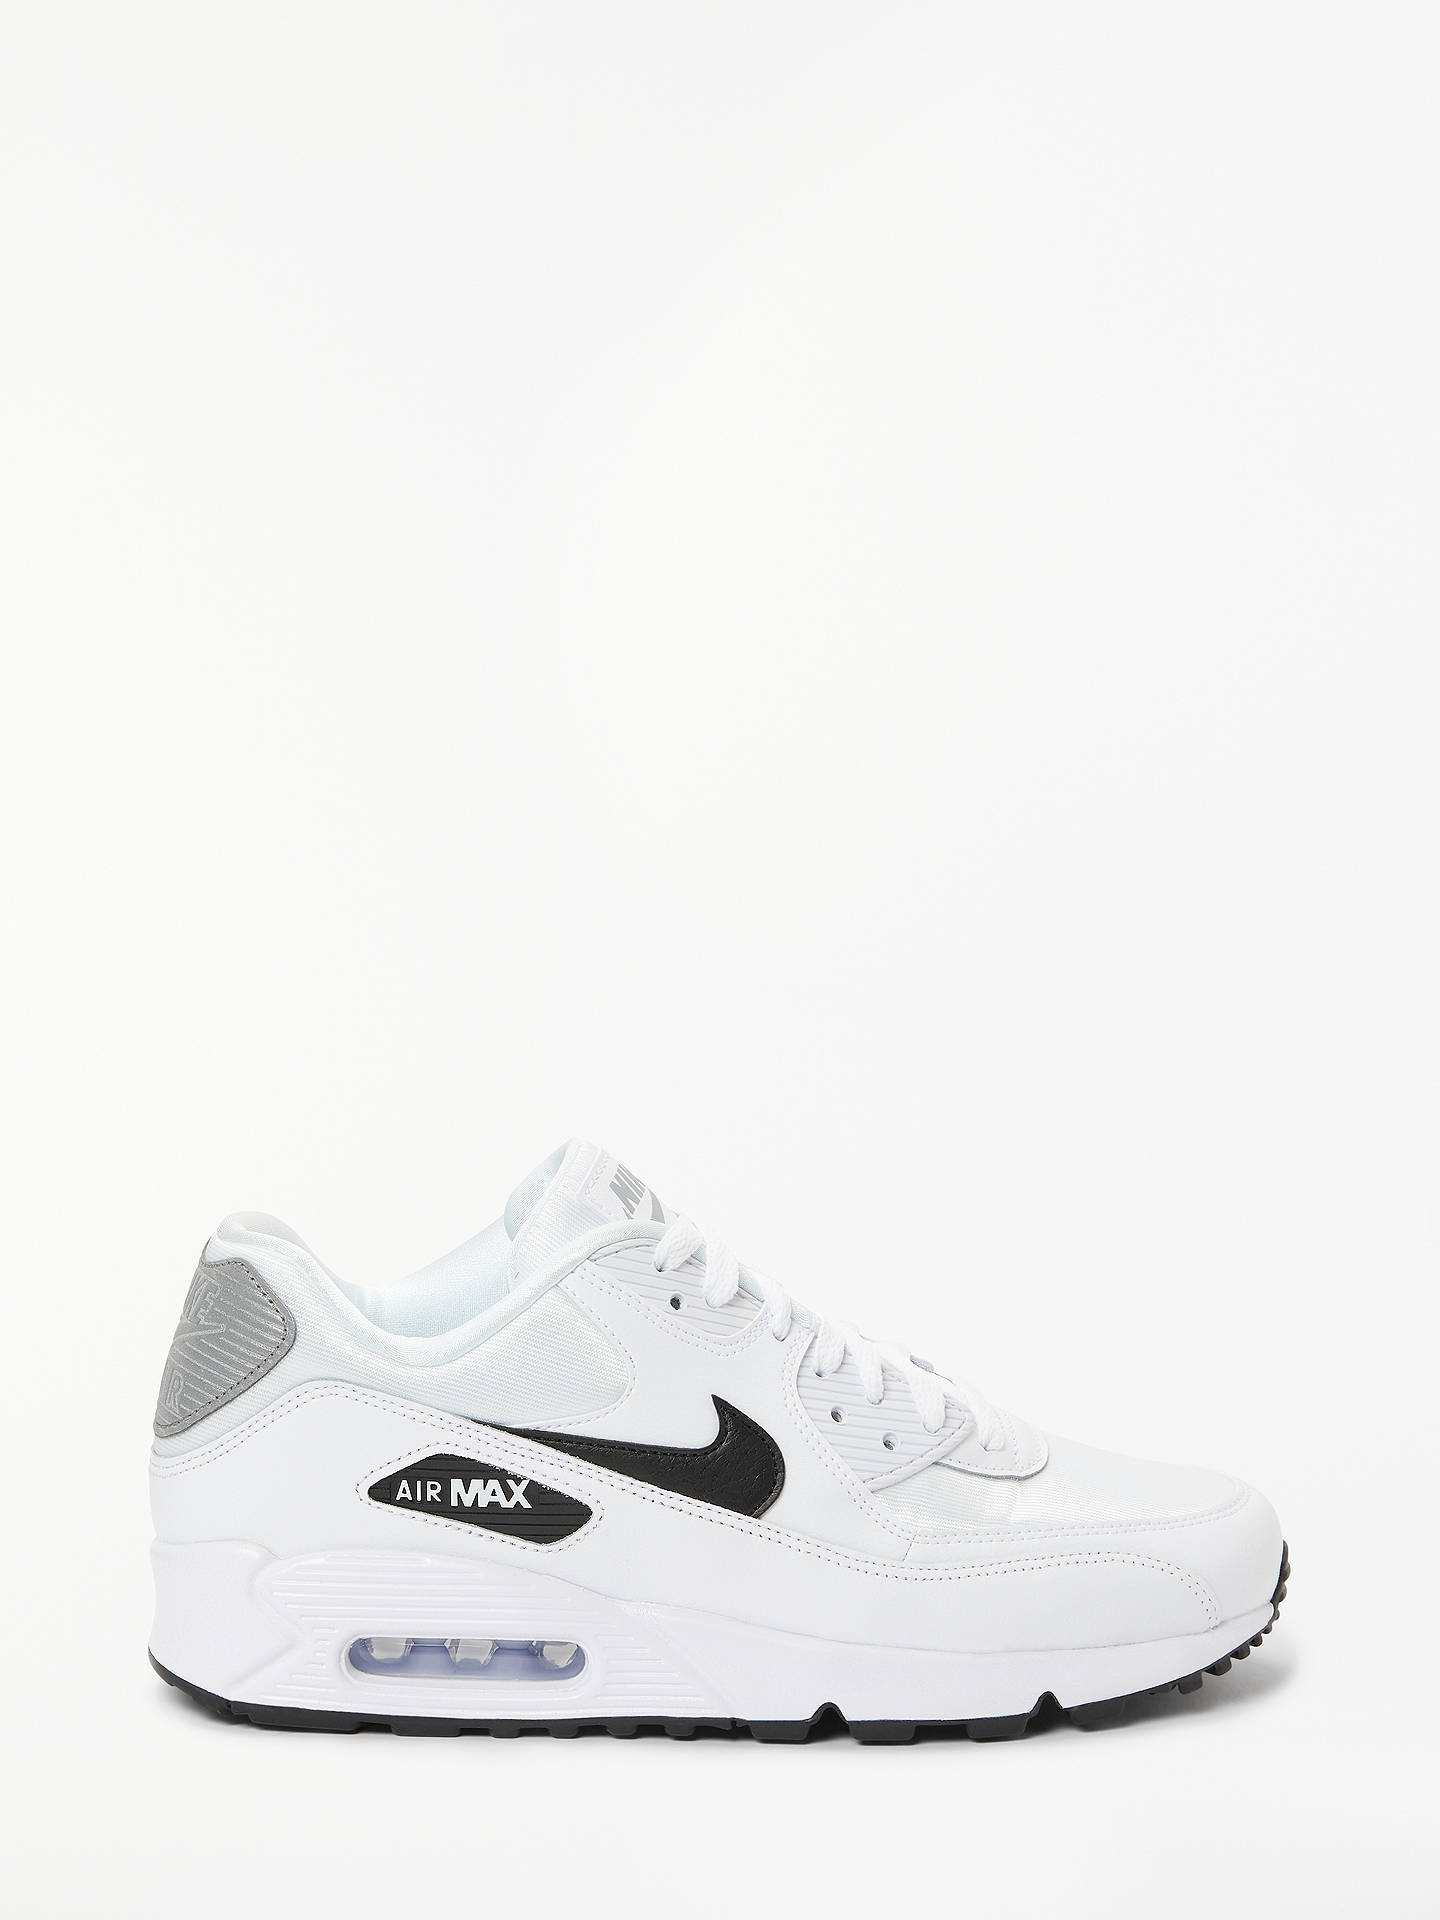 separation shoes 4cabc c4c35 Buy Nike Air Max 90 Women s Trainers, White Black Reflect Silver, 4 ...